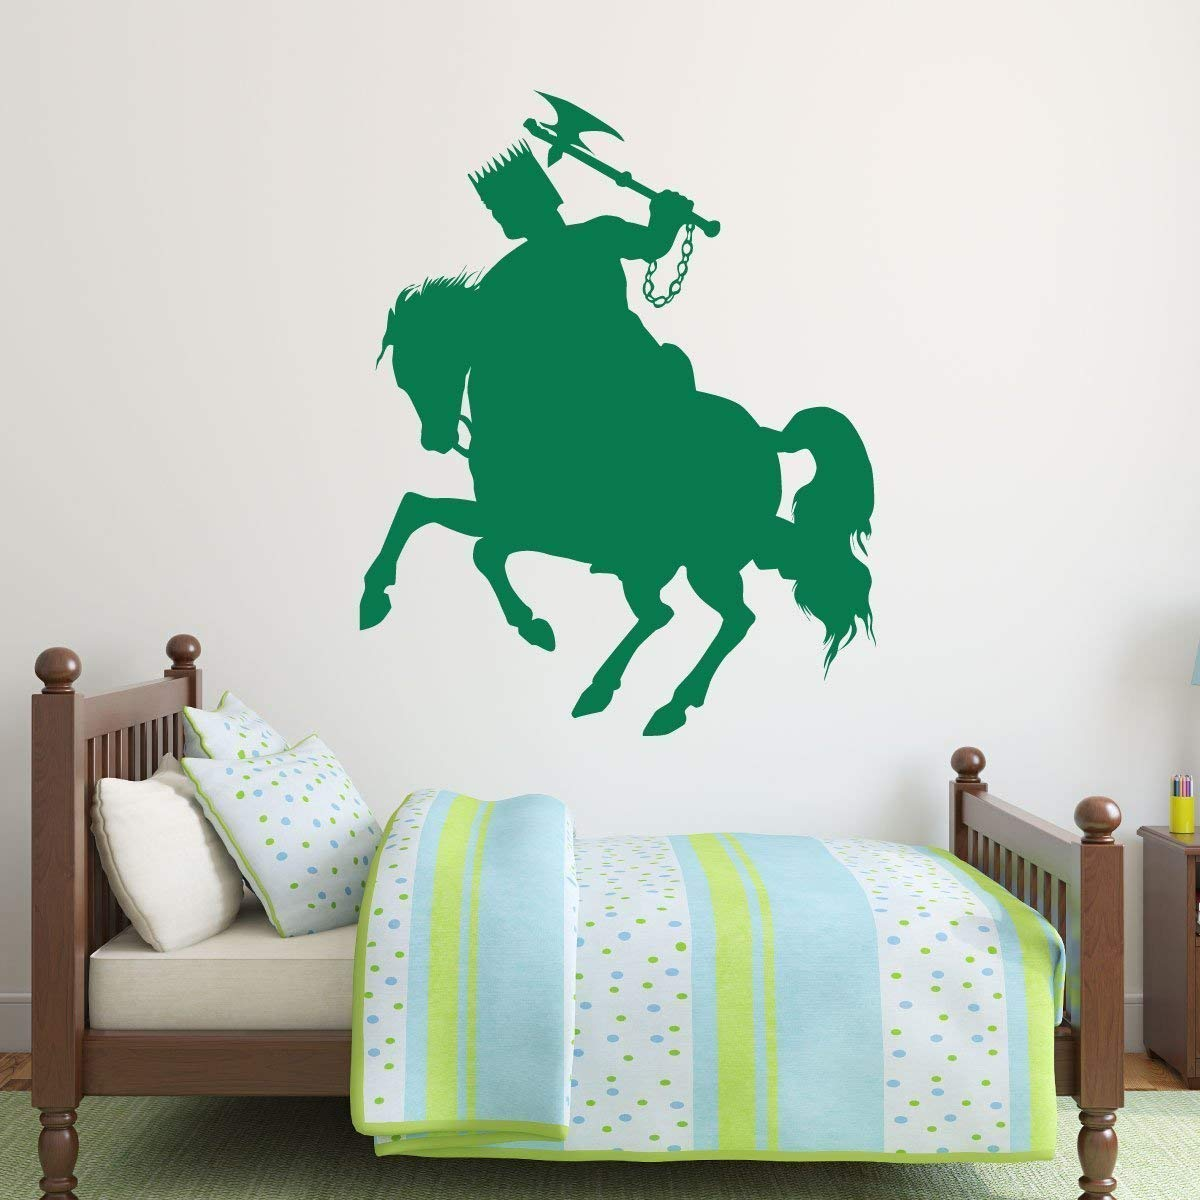 Personalized name wall decal for boys bedroom or playroom medieval knight on horse silhouette custom vinyl decoration small large sizes black